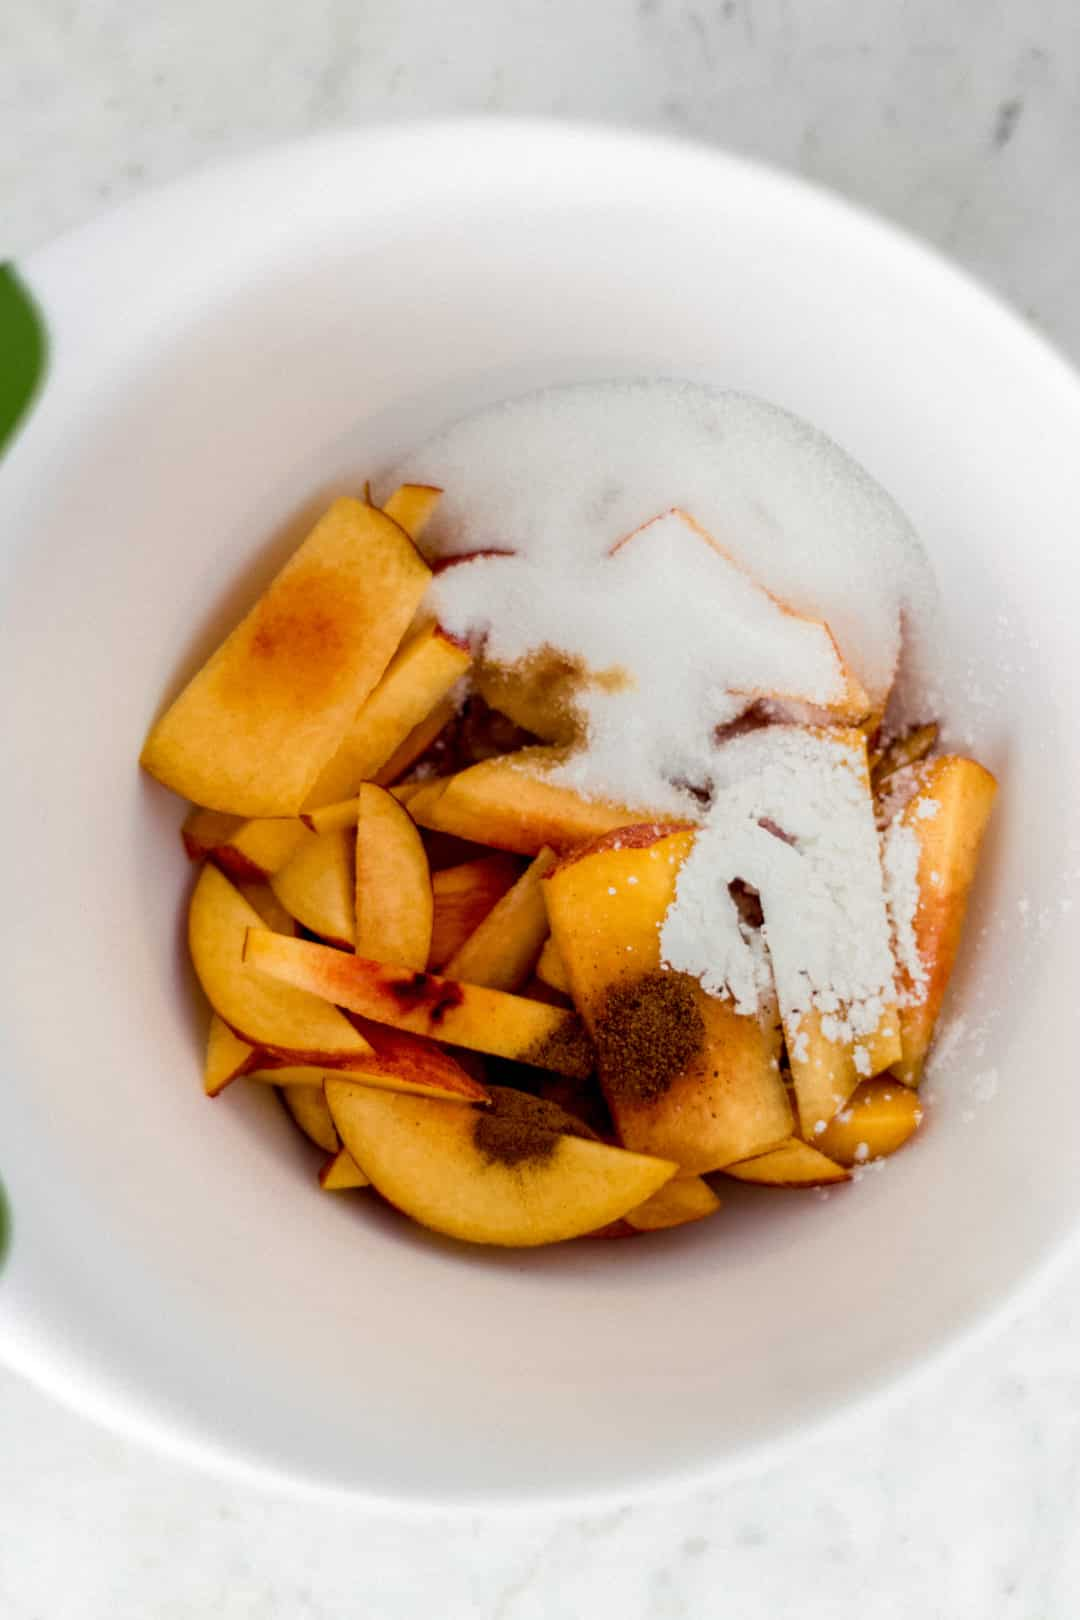 ingredients for peach galette in large white bowl with green rim